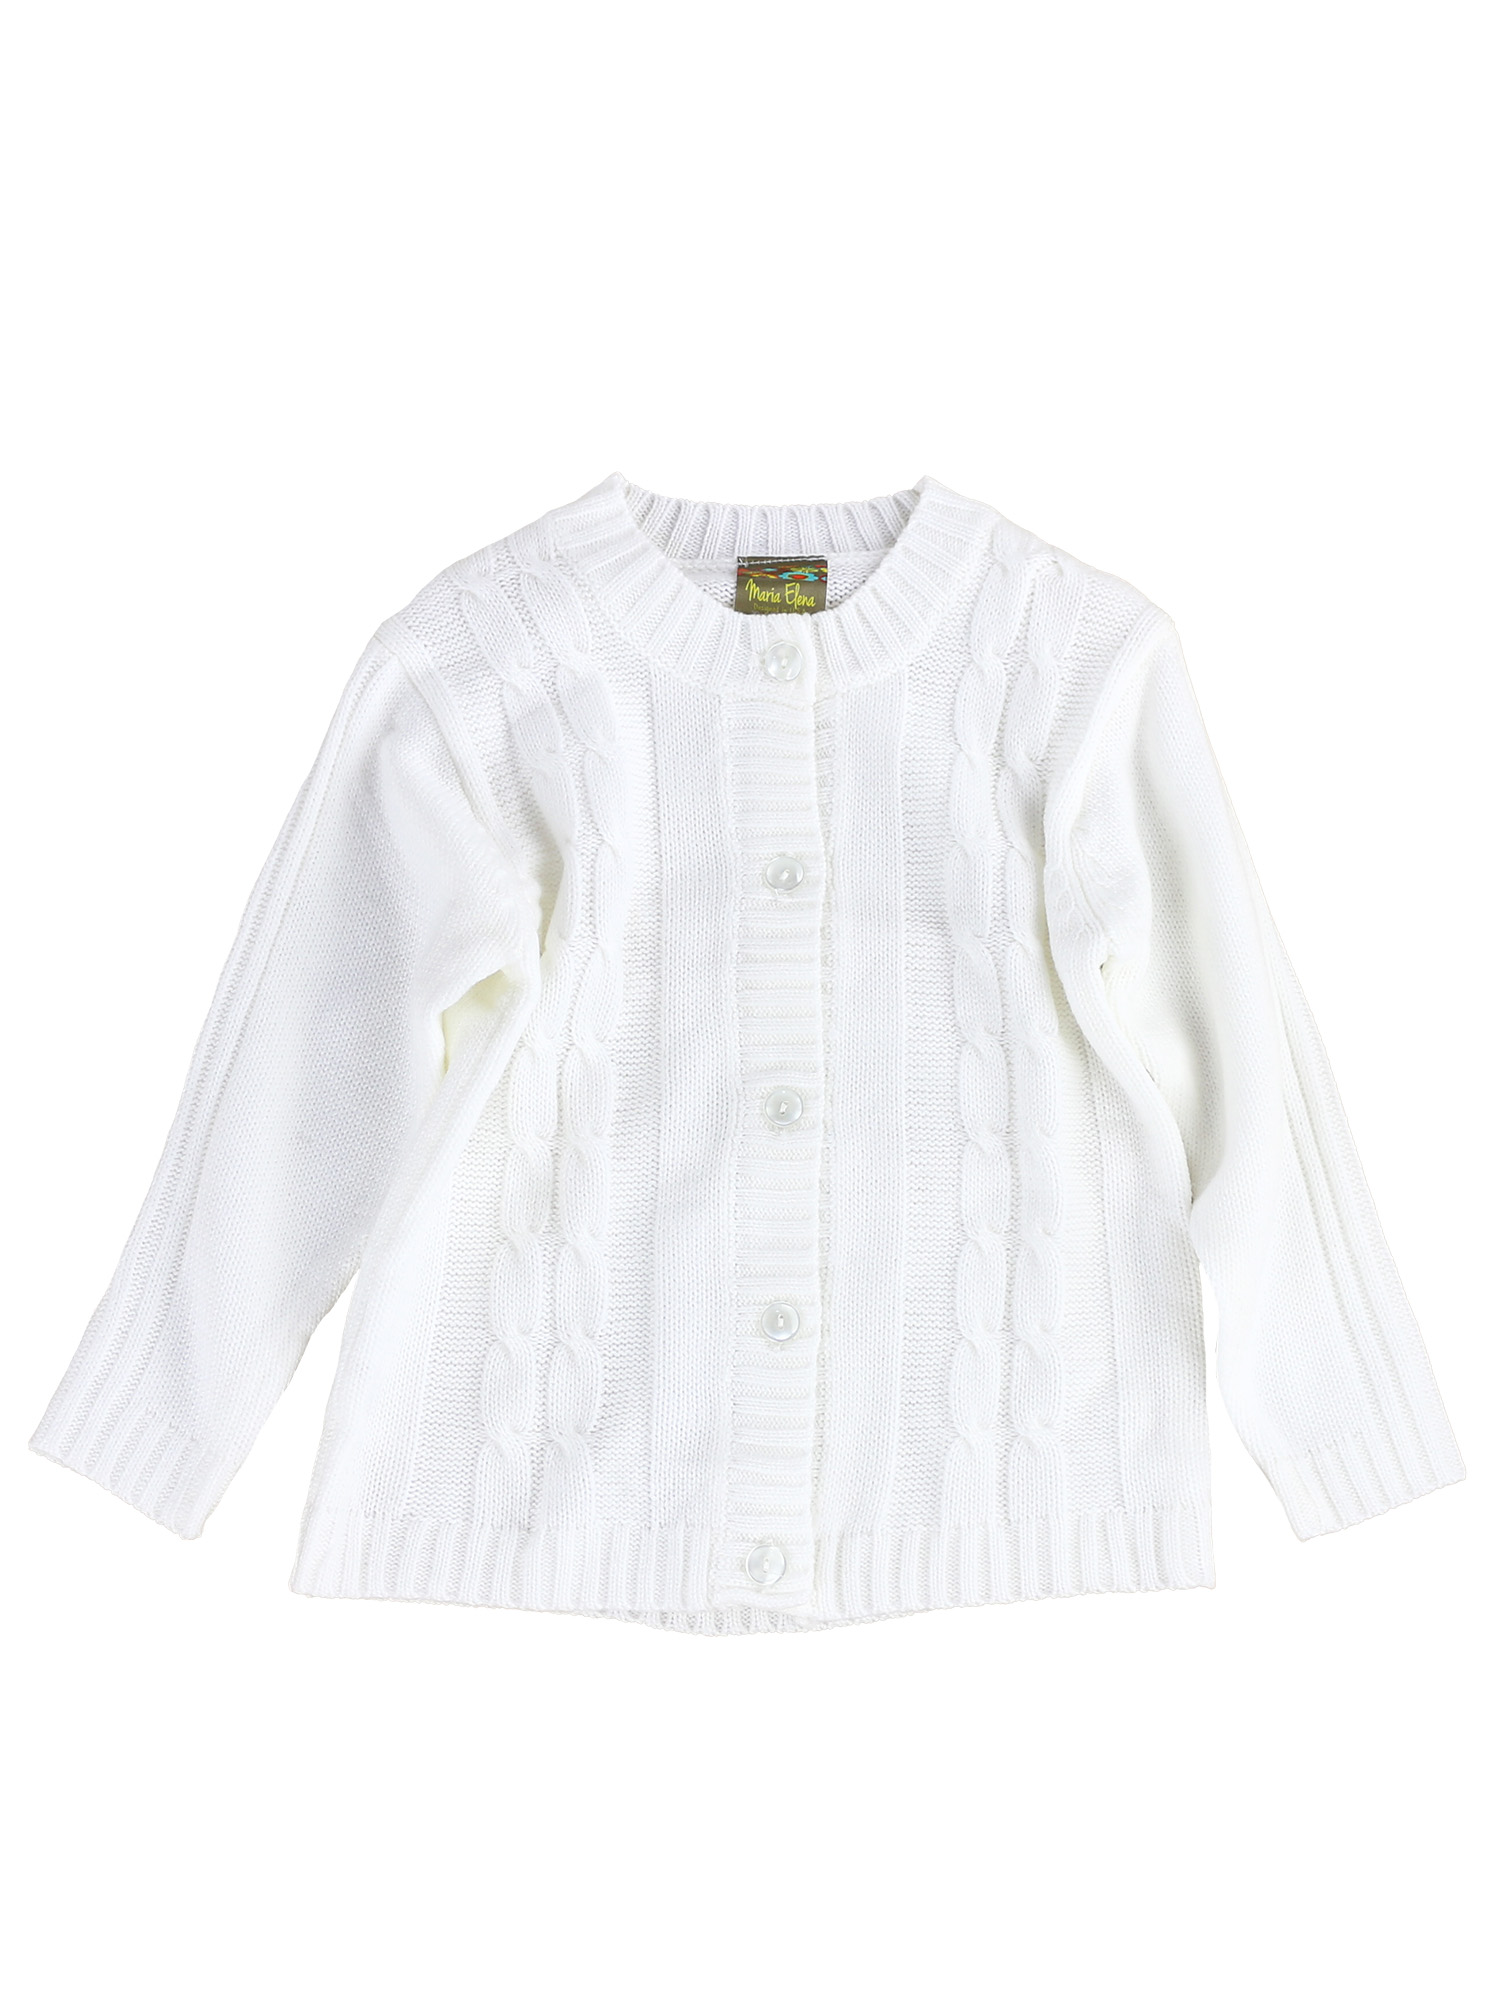 Cable Knit Margie-Jay Cardigan Sweater for Toddlers and Girls (Pearl White, 2T)